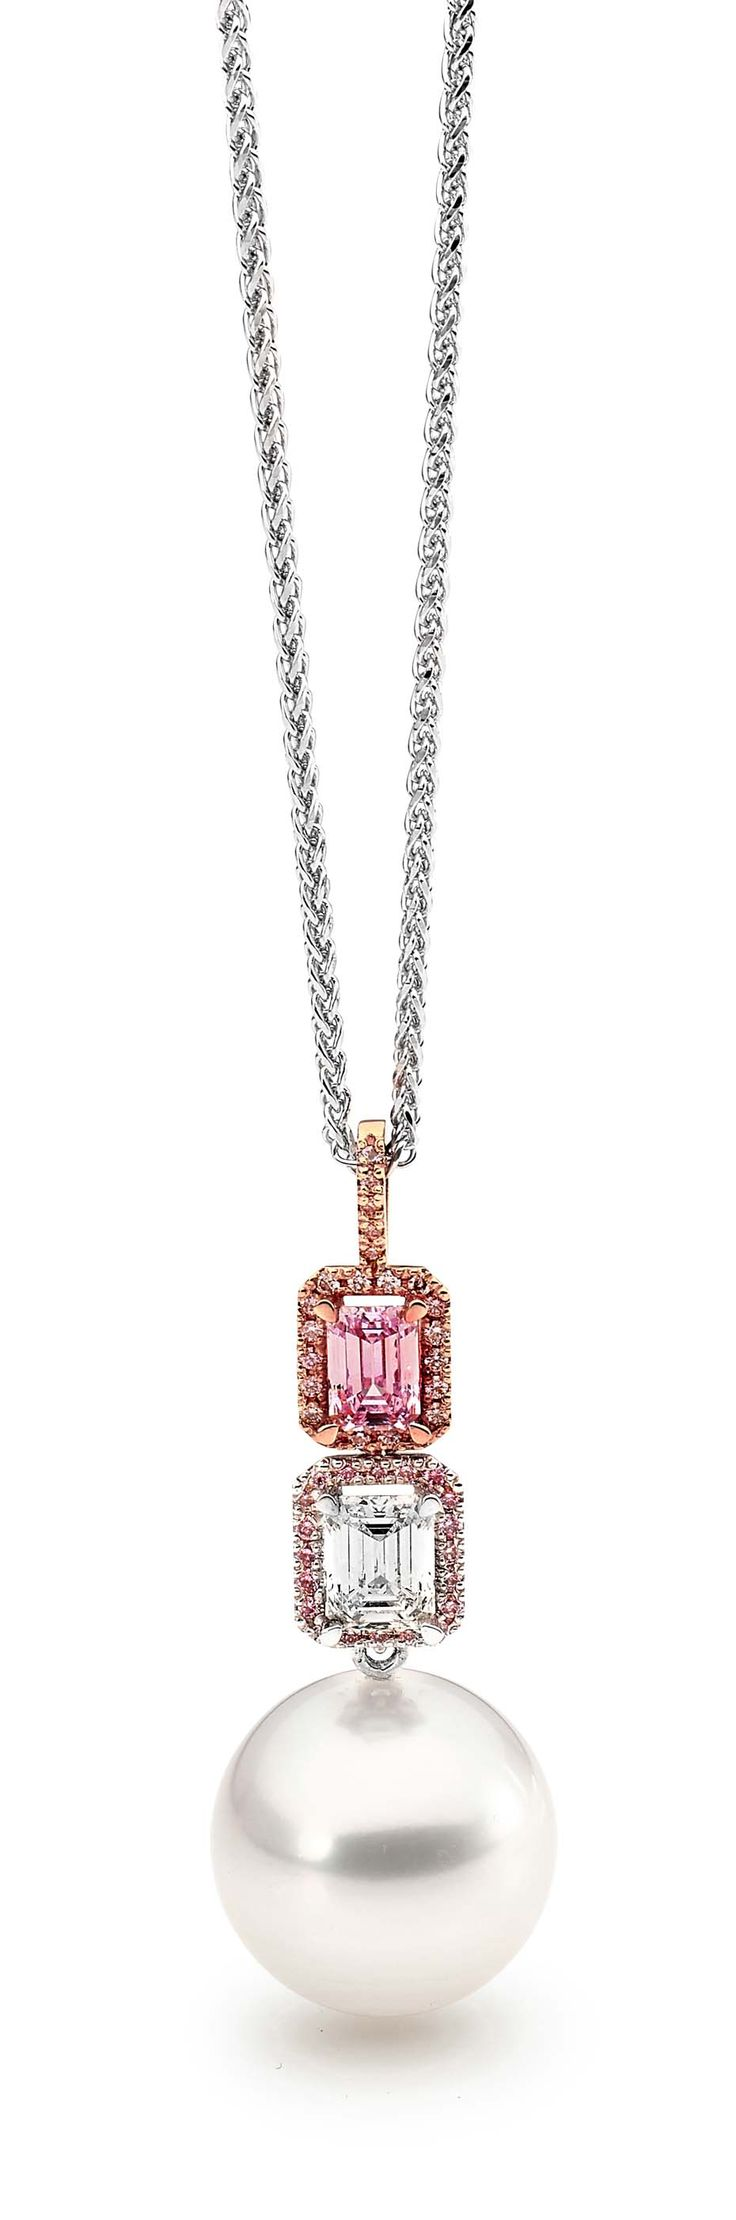 Linneys pendant necklace in white and rose gold with an Australian South Sea pearl, a pink diamond and a white diamond.